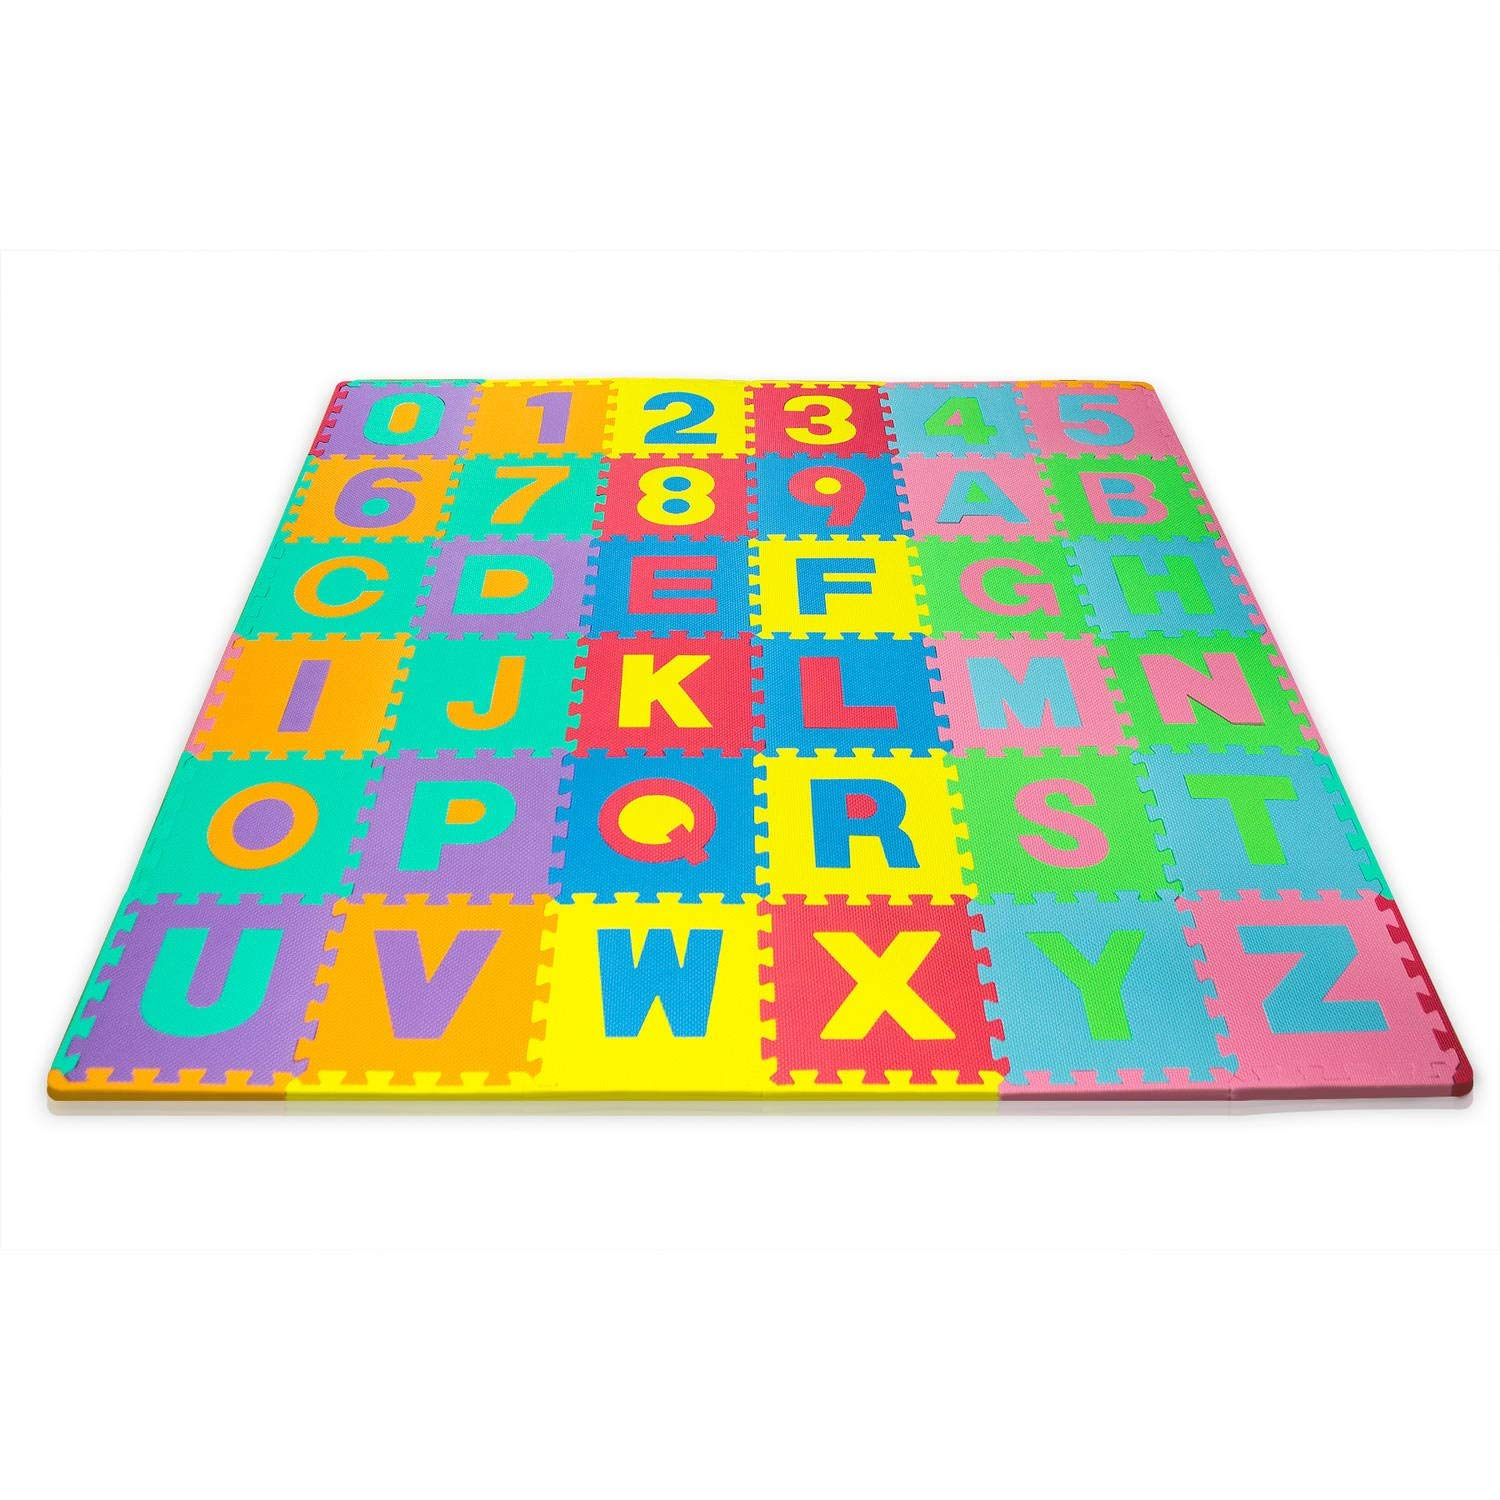 d4b58f8e Matney® Kid's Foam Floor Alphabet and Number Puzzle Mat, Multicolor (36  Piece)